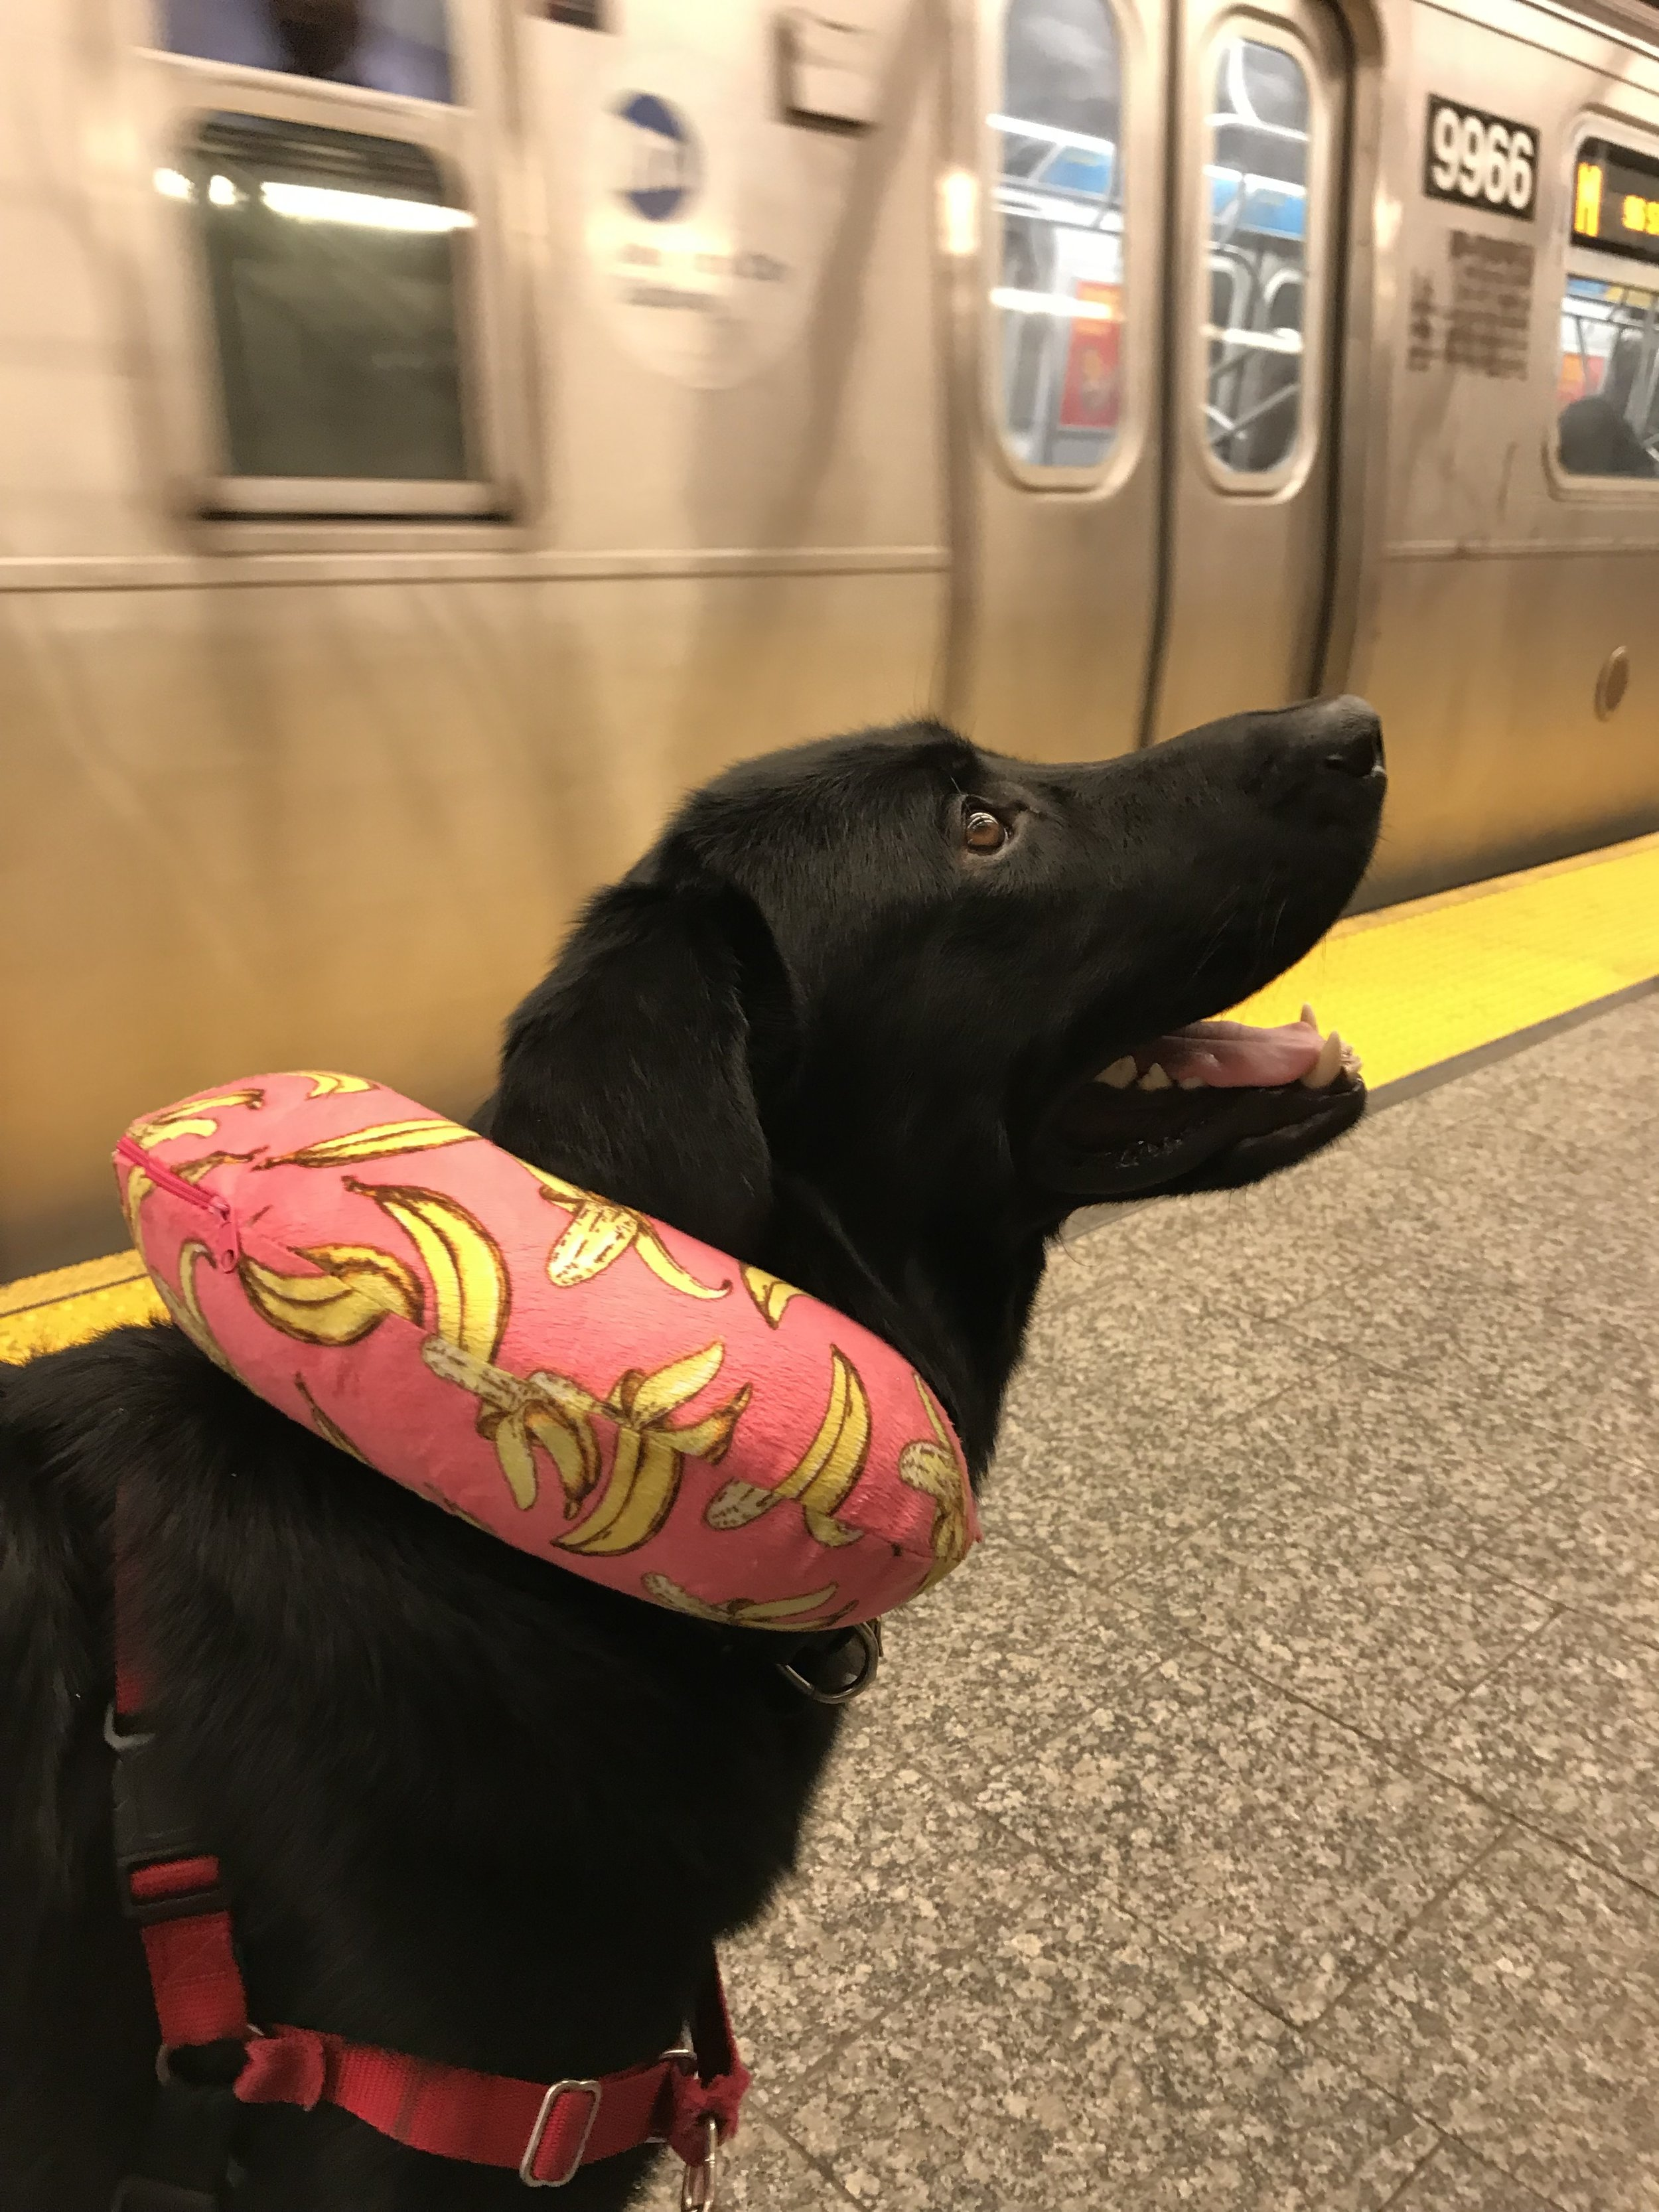 Biggie waiting for a train in a New York City subway station. I I Photo credit to Kirubell Asmamaw